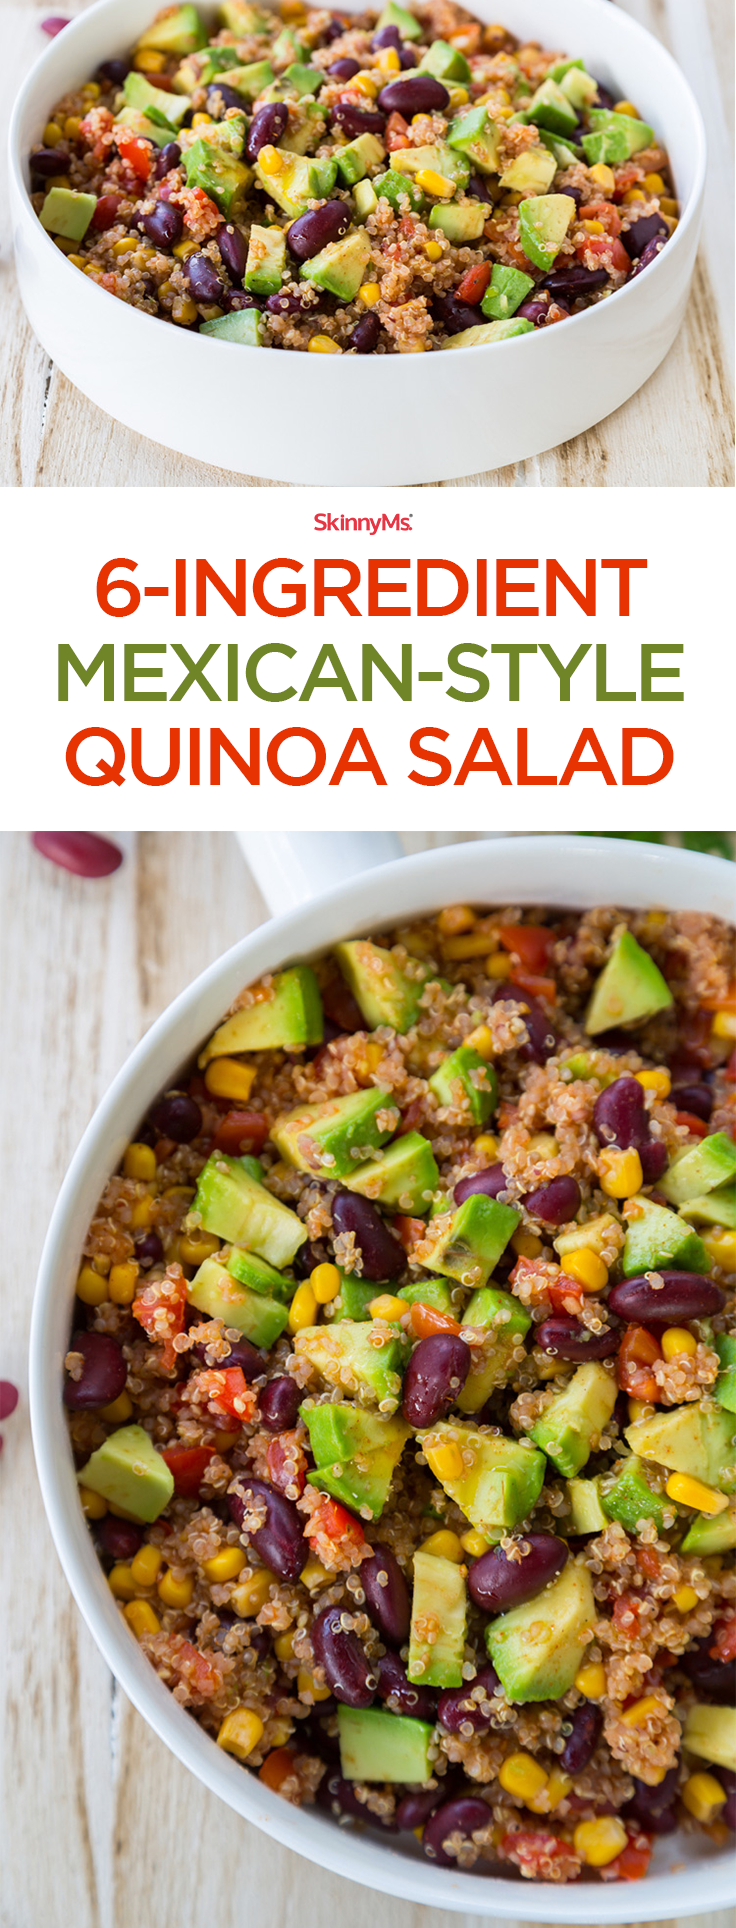 21 clean quinoa recipes